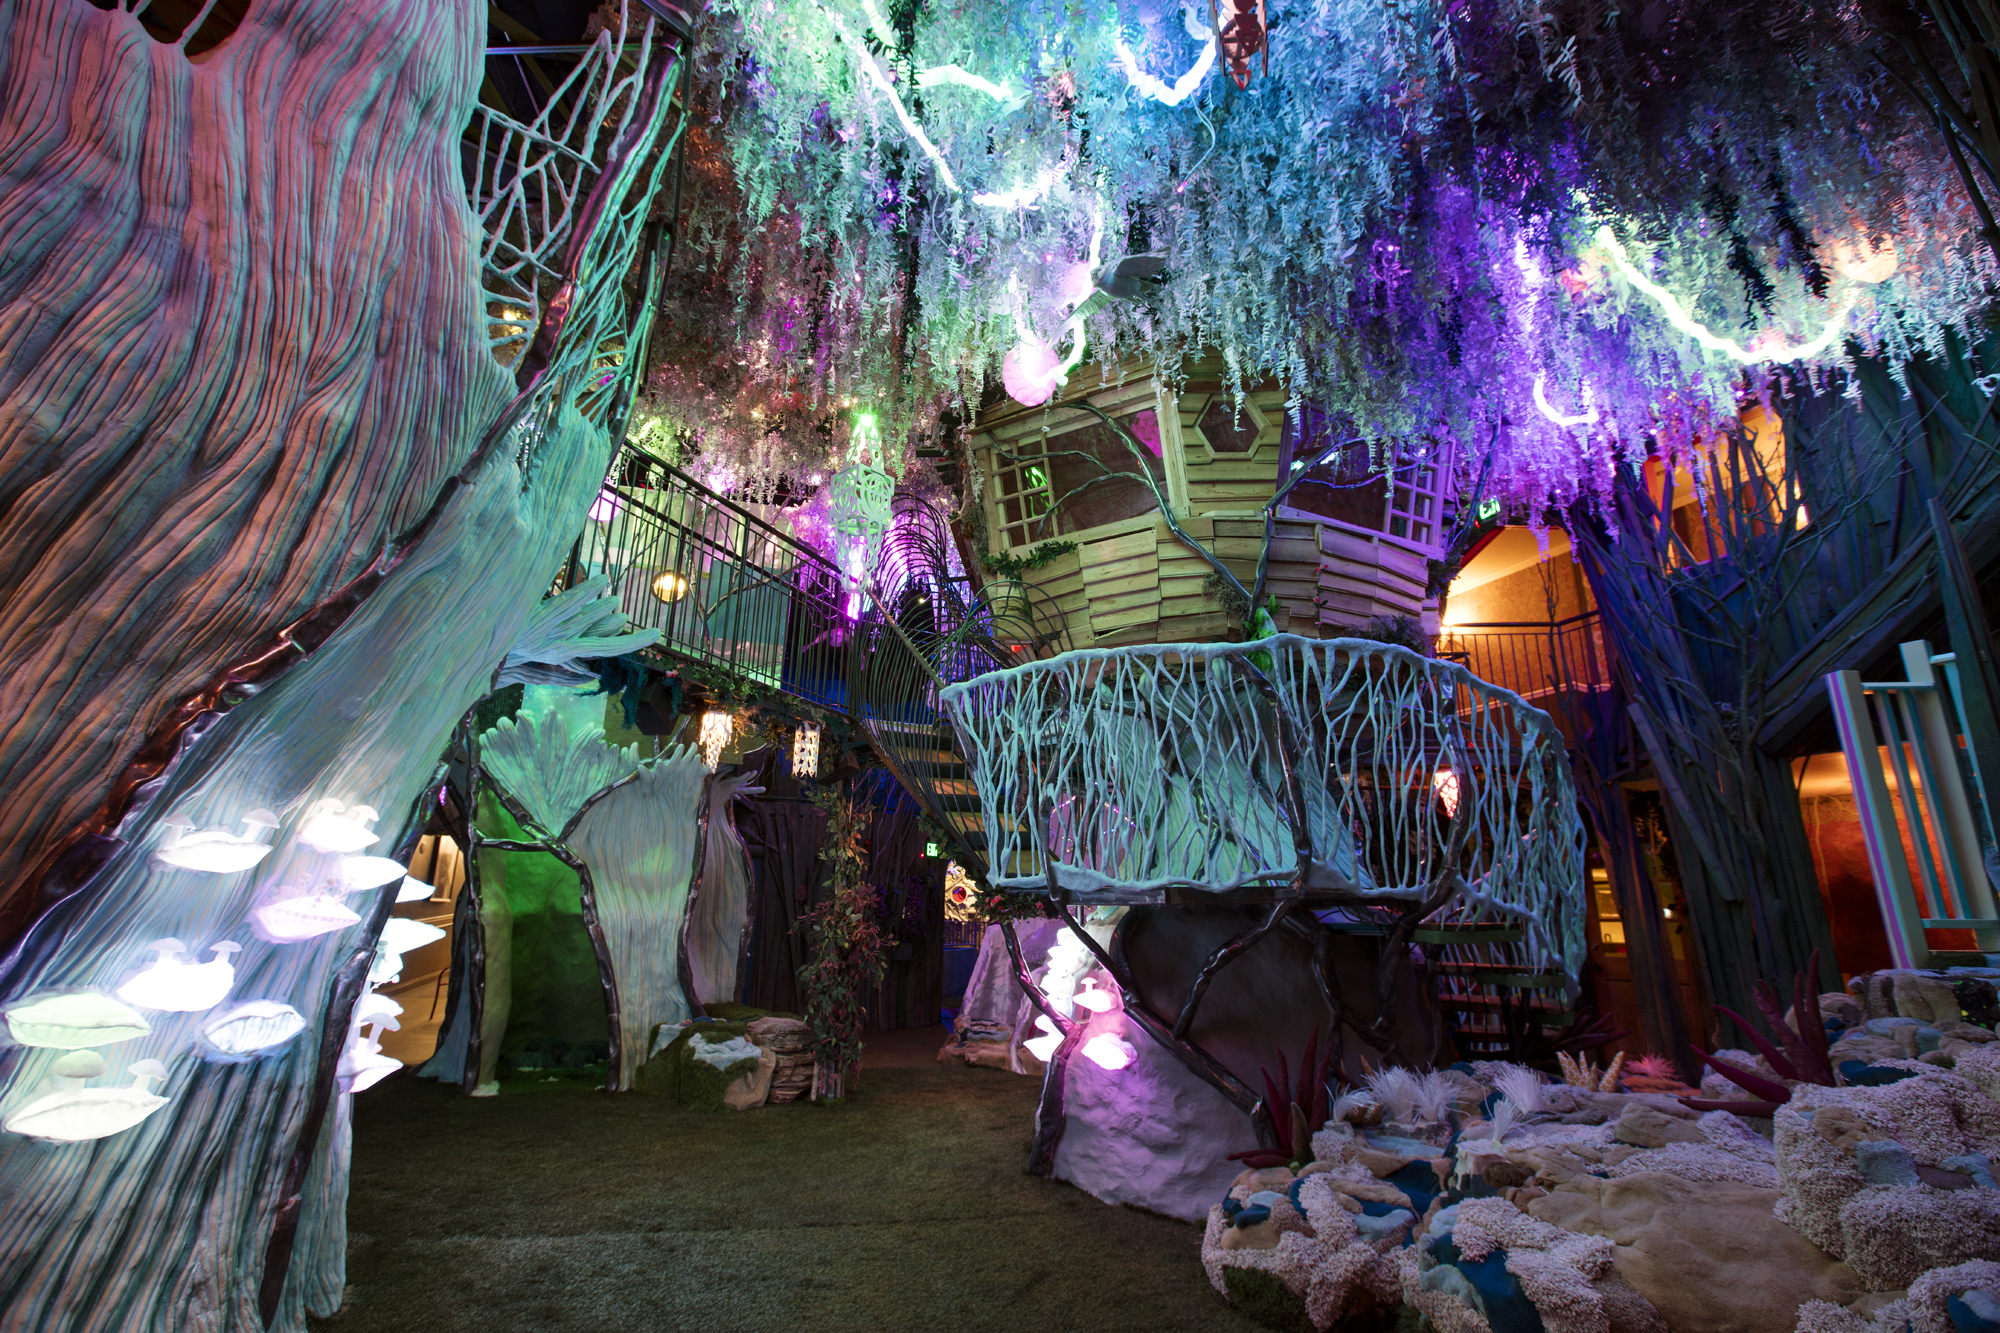 About Meow Wolf House Of Eternal Return